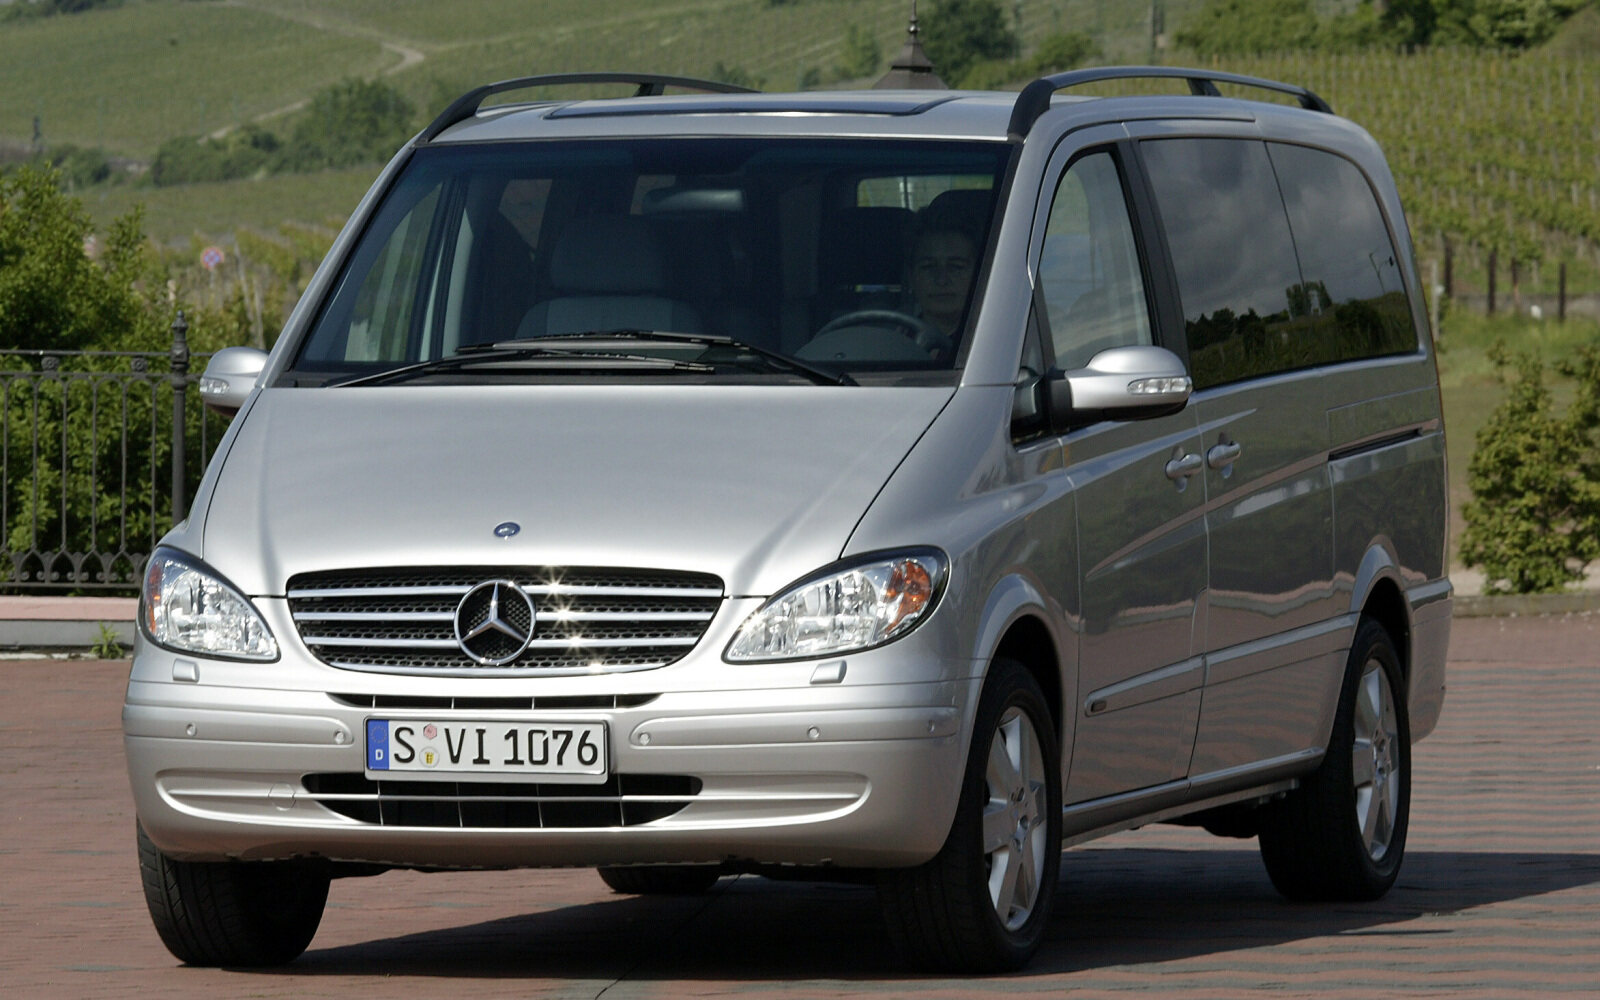 Private Transfer to/from Faro/Lisbon